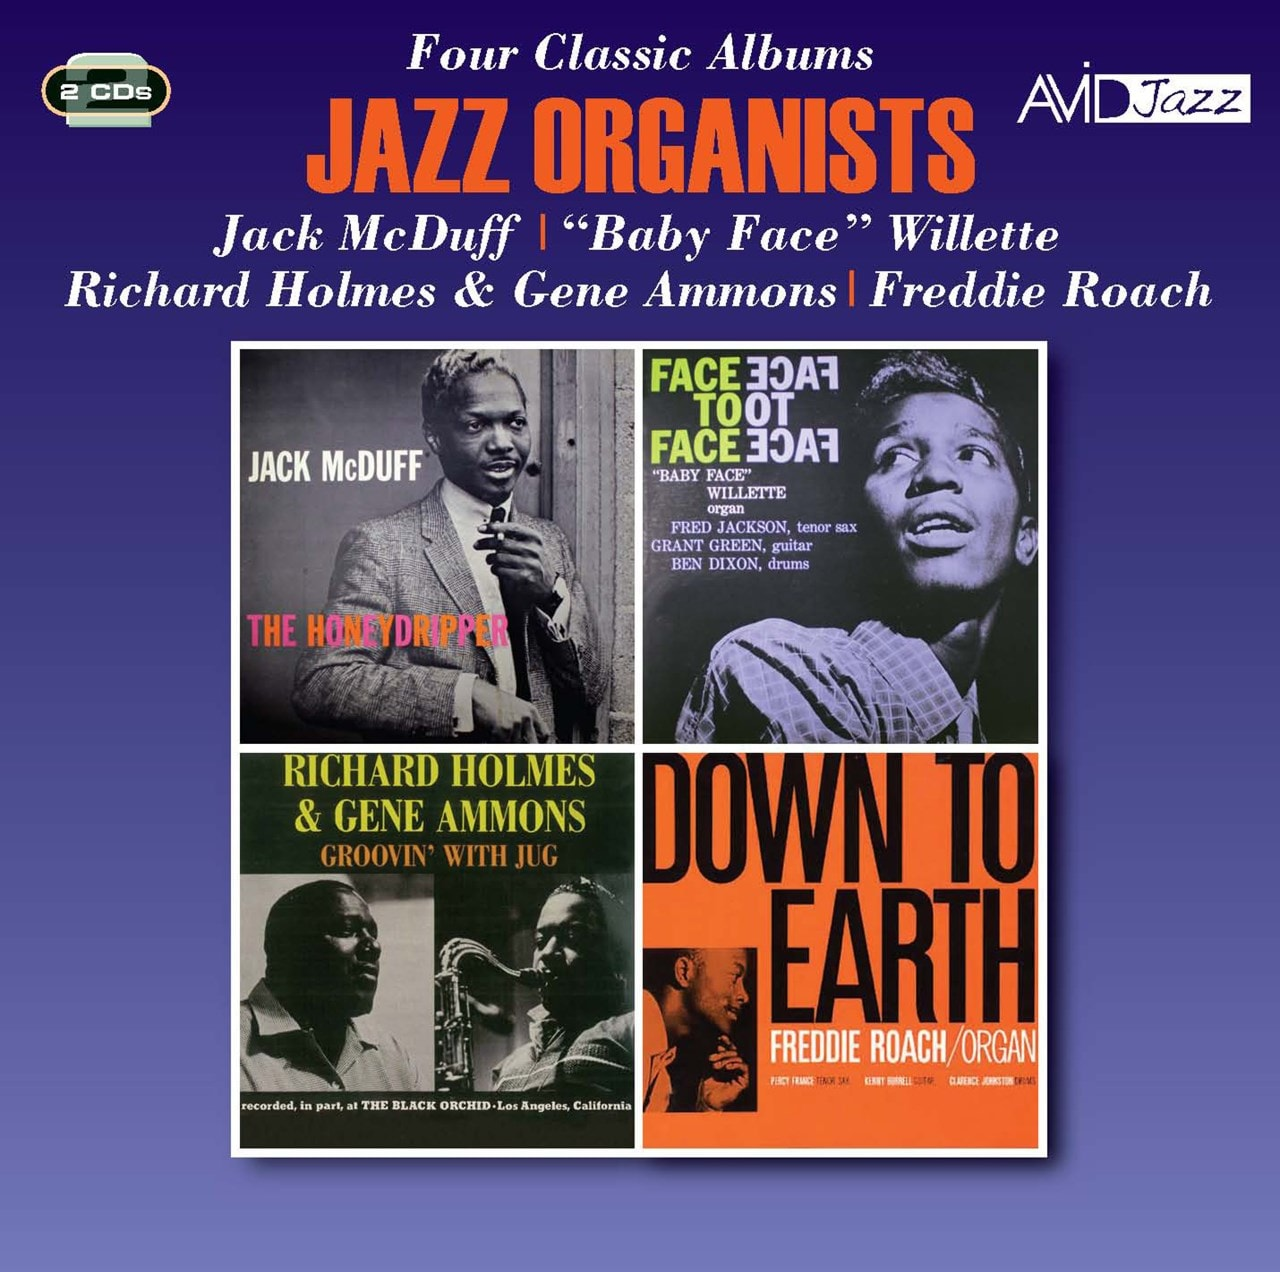 Jazz Organists: Four Classic Albums - 1